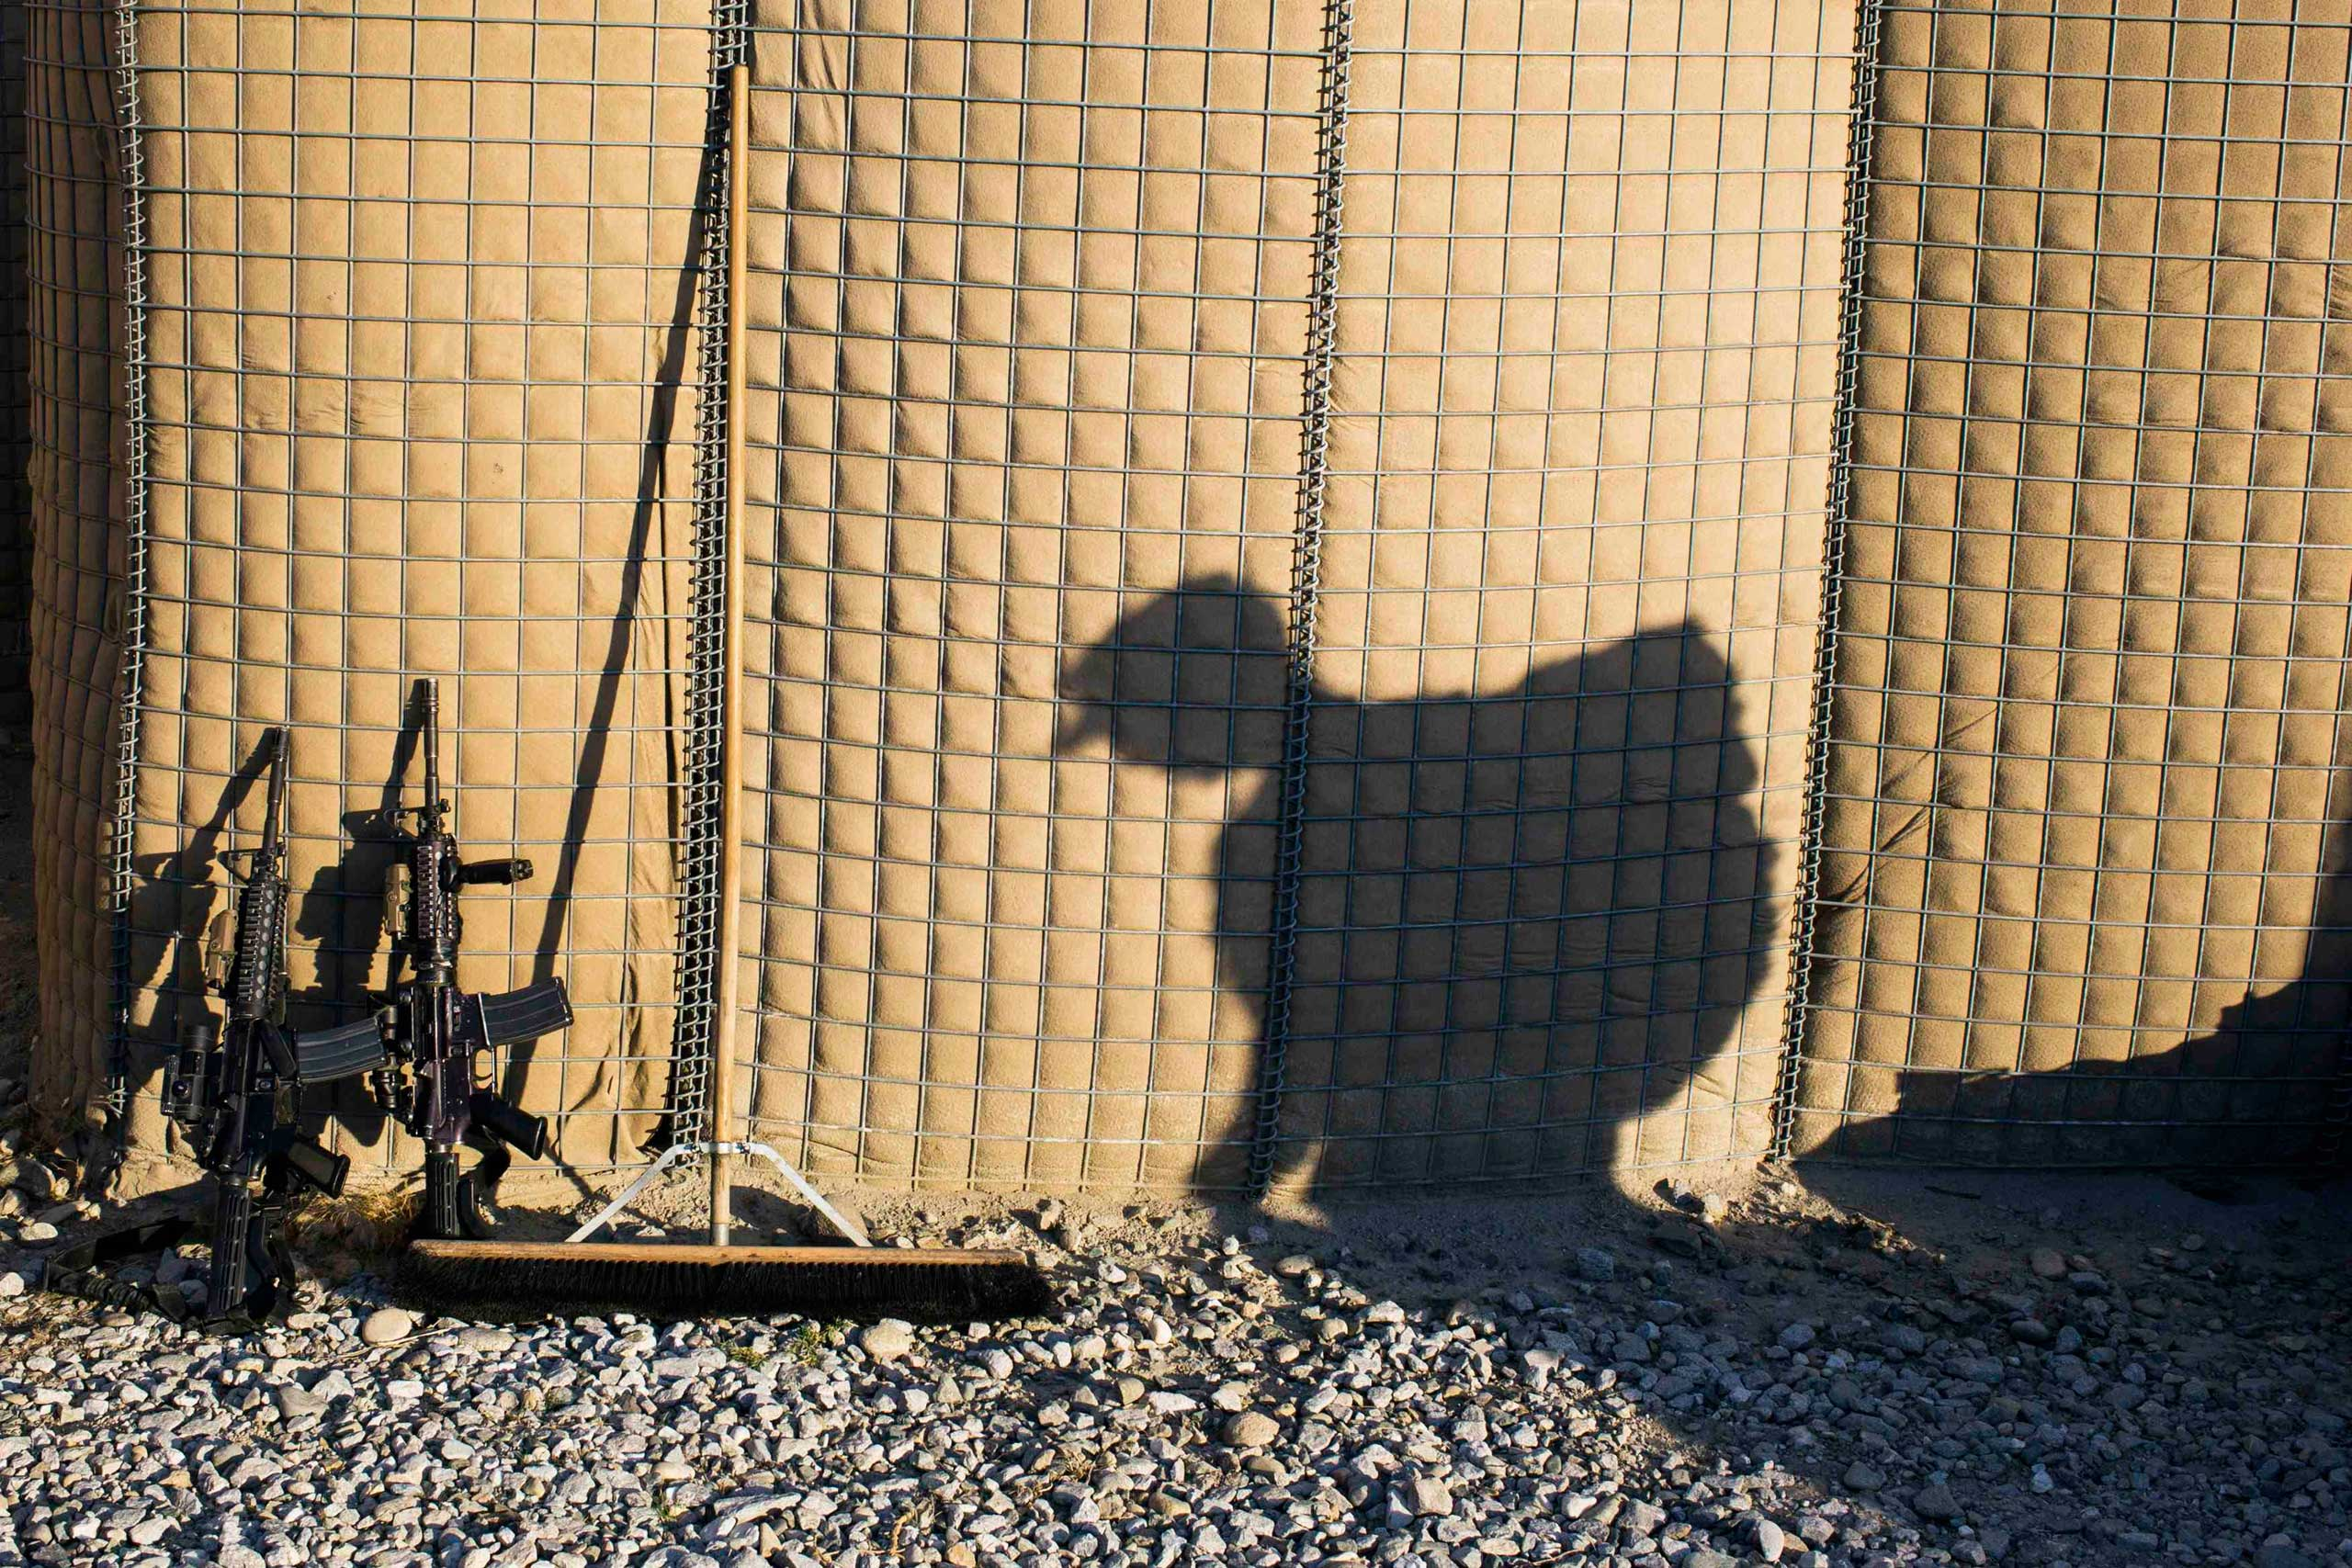 A U.S. soldier from D Troop of the 3rd Cavalry Regiment carries a backpack to a shipping container during preparations for leaving Afghanistan at forward operating base Gamberi in the Laghman province of Afghanistan on Dec. 28, 2014.